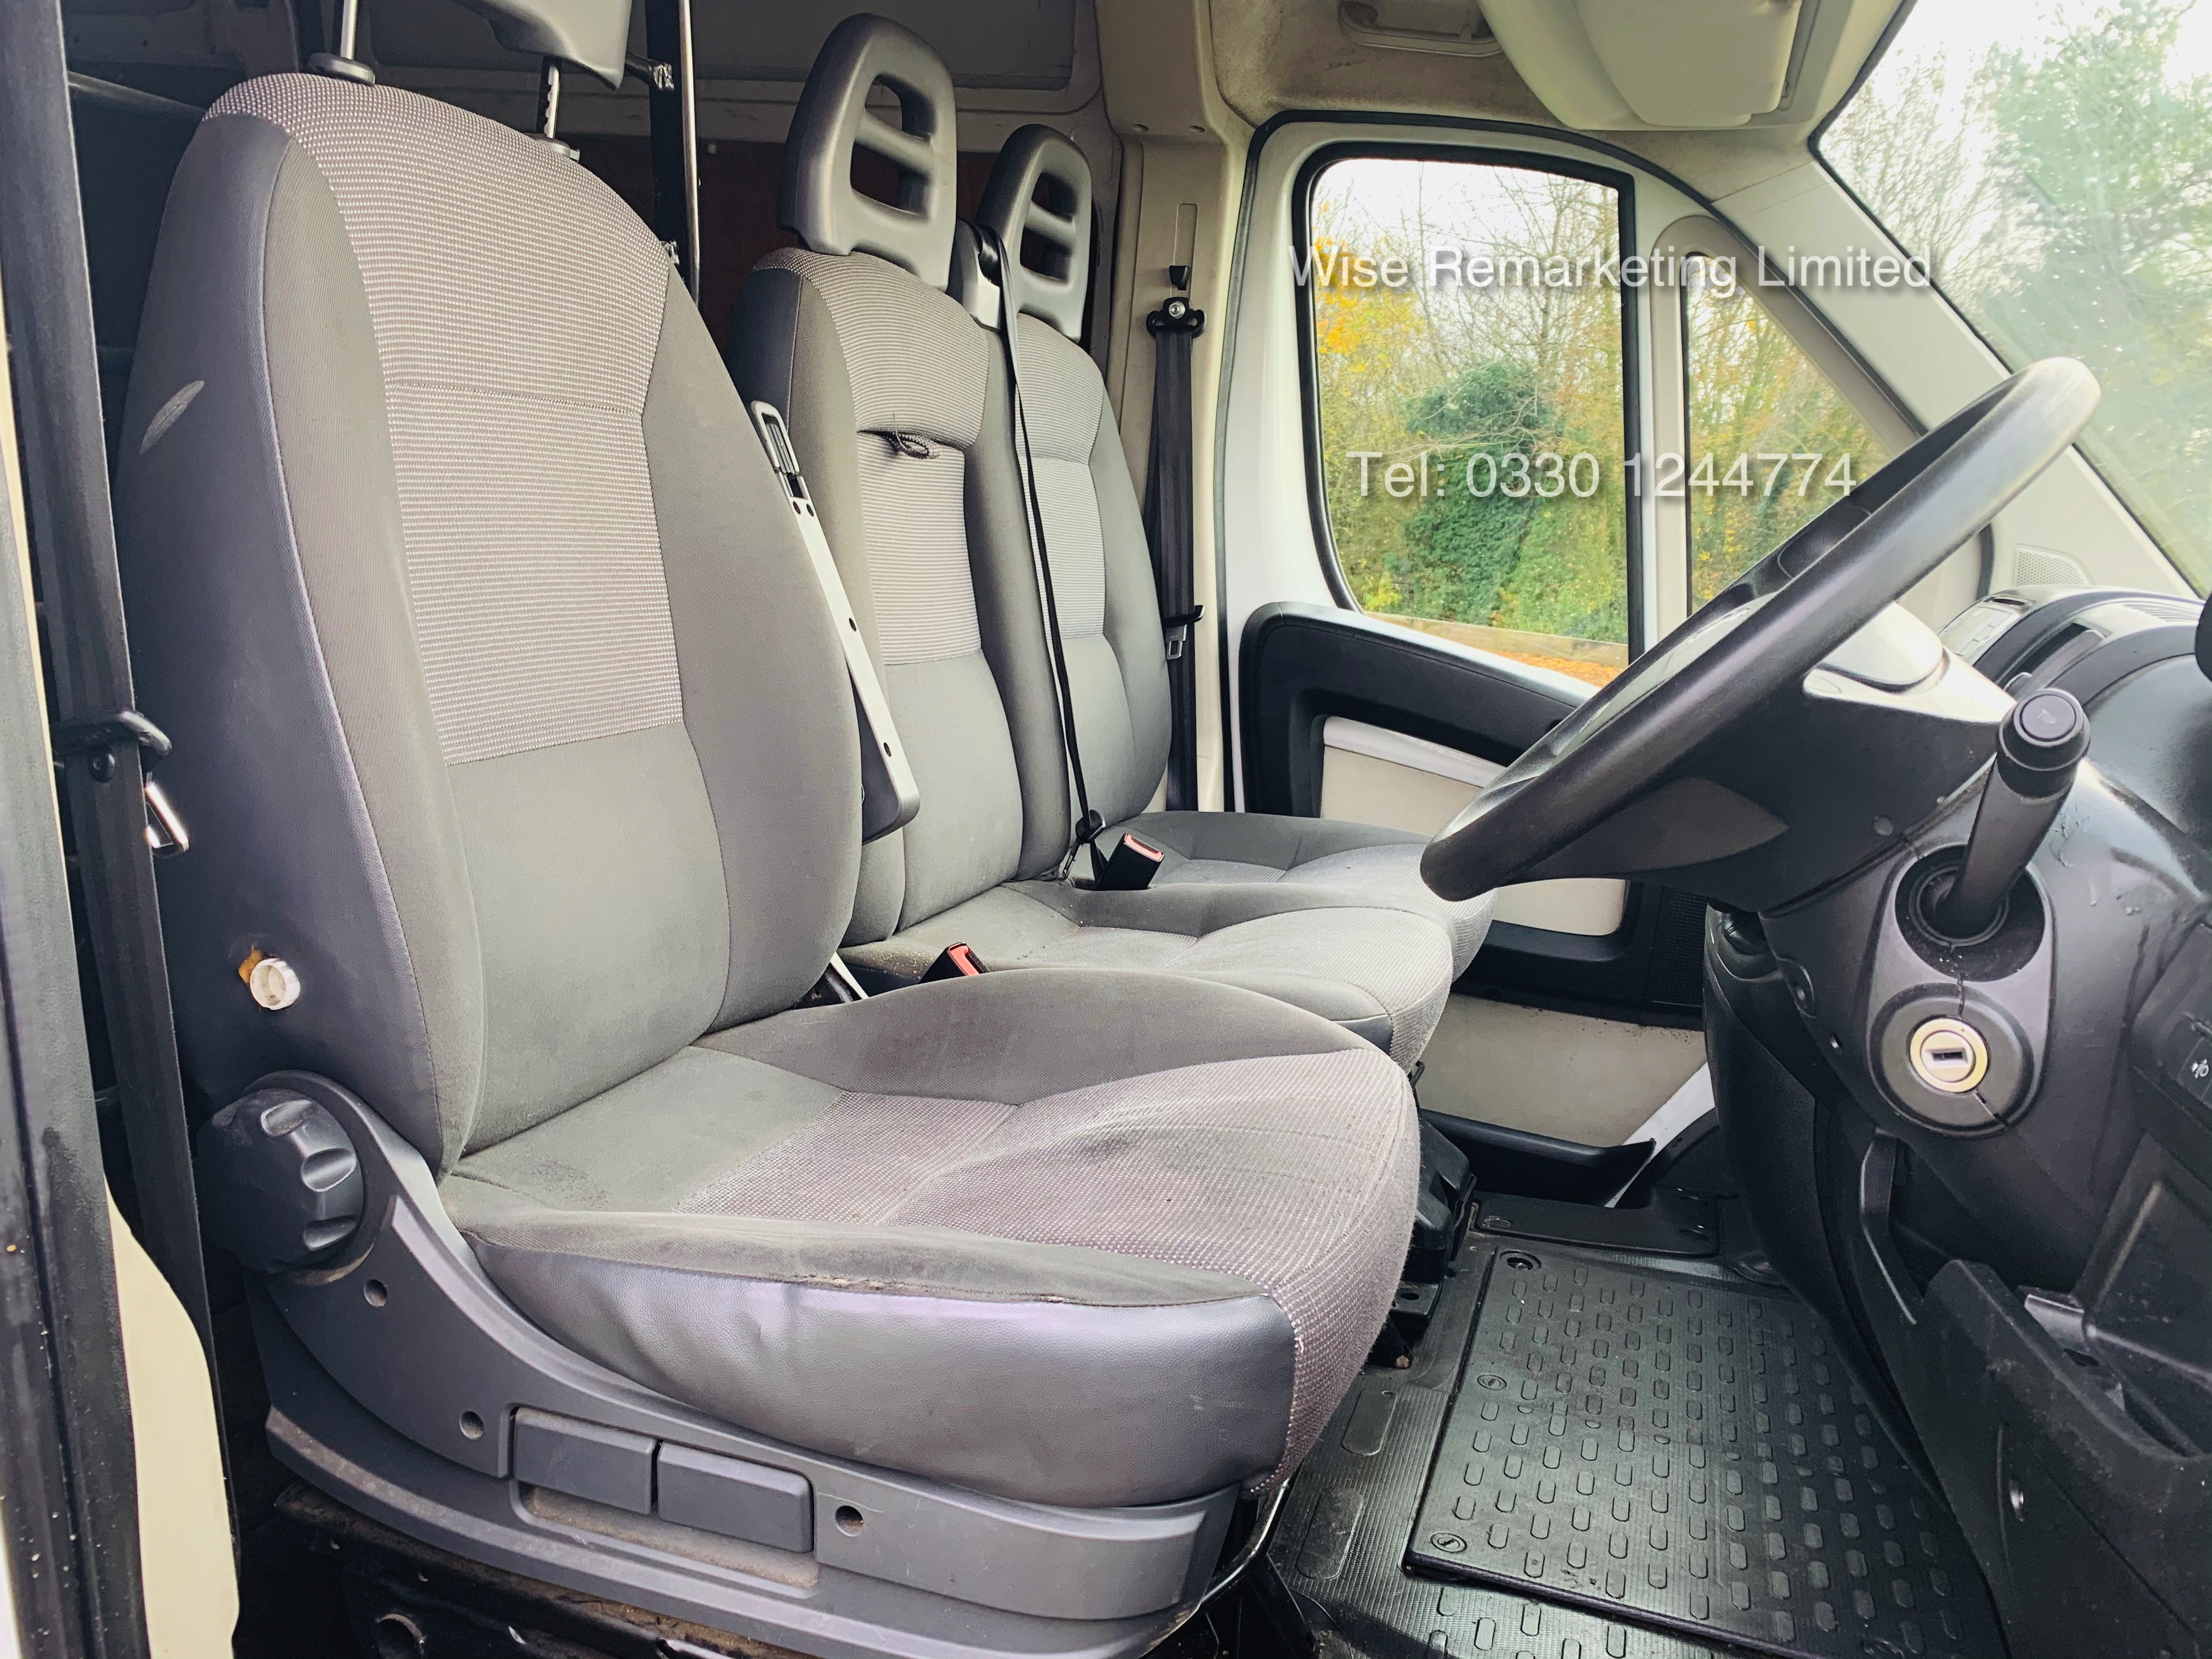 Peugeot Boxer 335 2.2 HDi (L3H2) 2014 Model - 1 Keeper From New - Long Wheel Base - Image 10 of 17